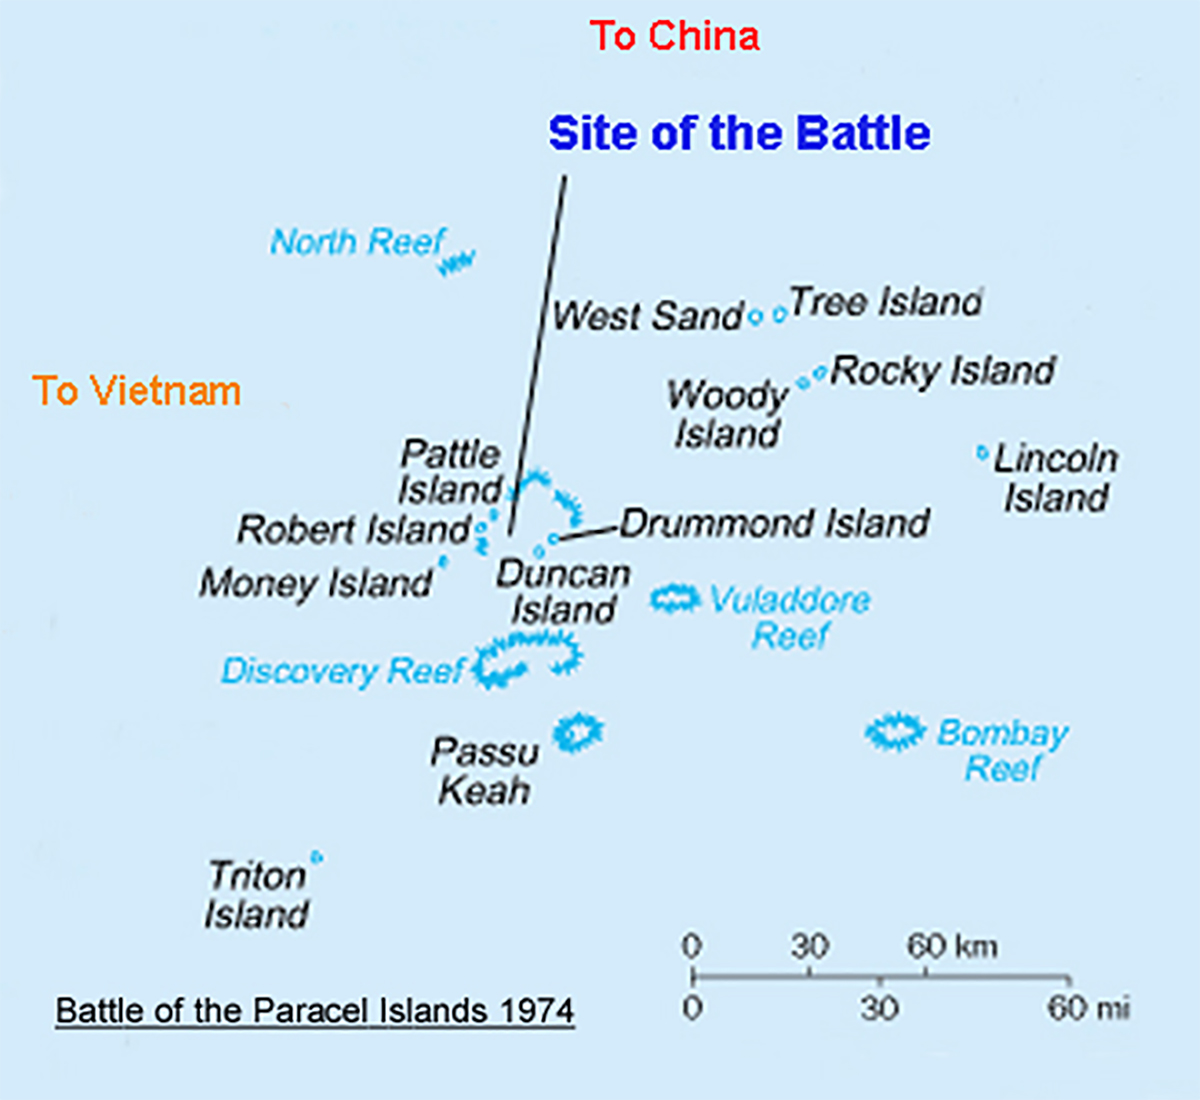 January 19, 1974 – China gains control over all the Paracel Islands after a military engagement with South Vietnam